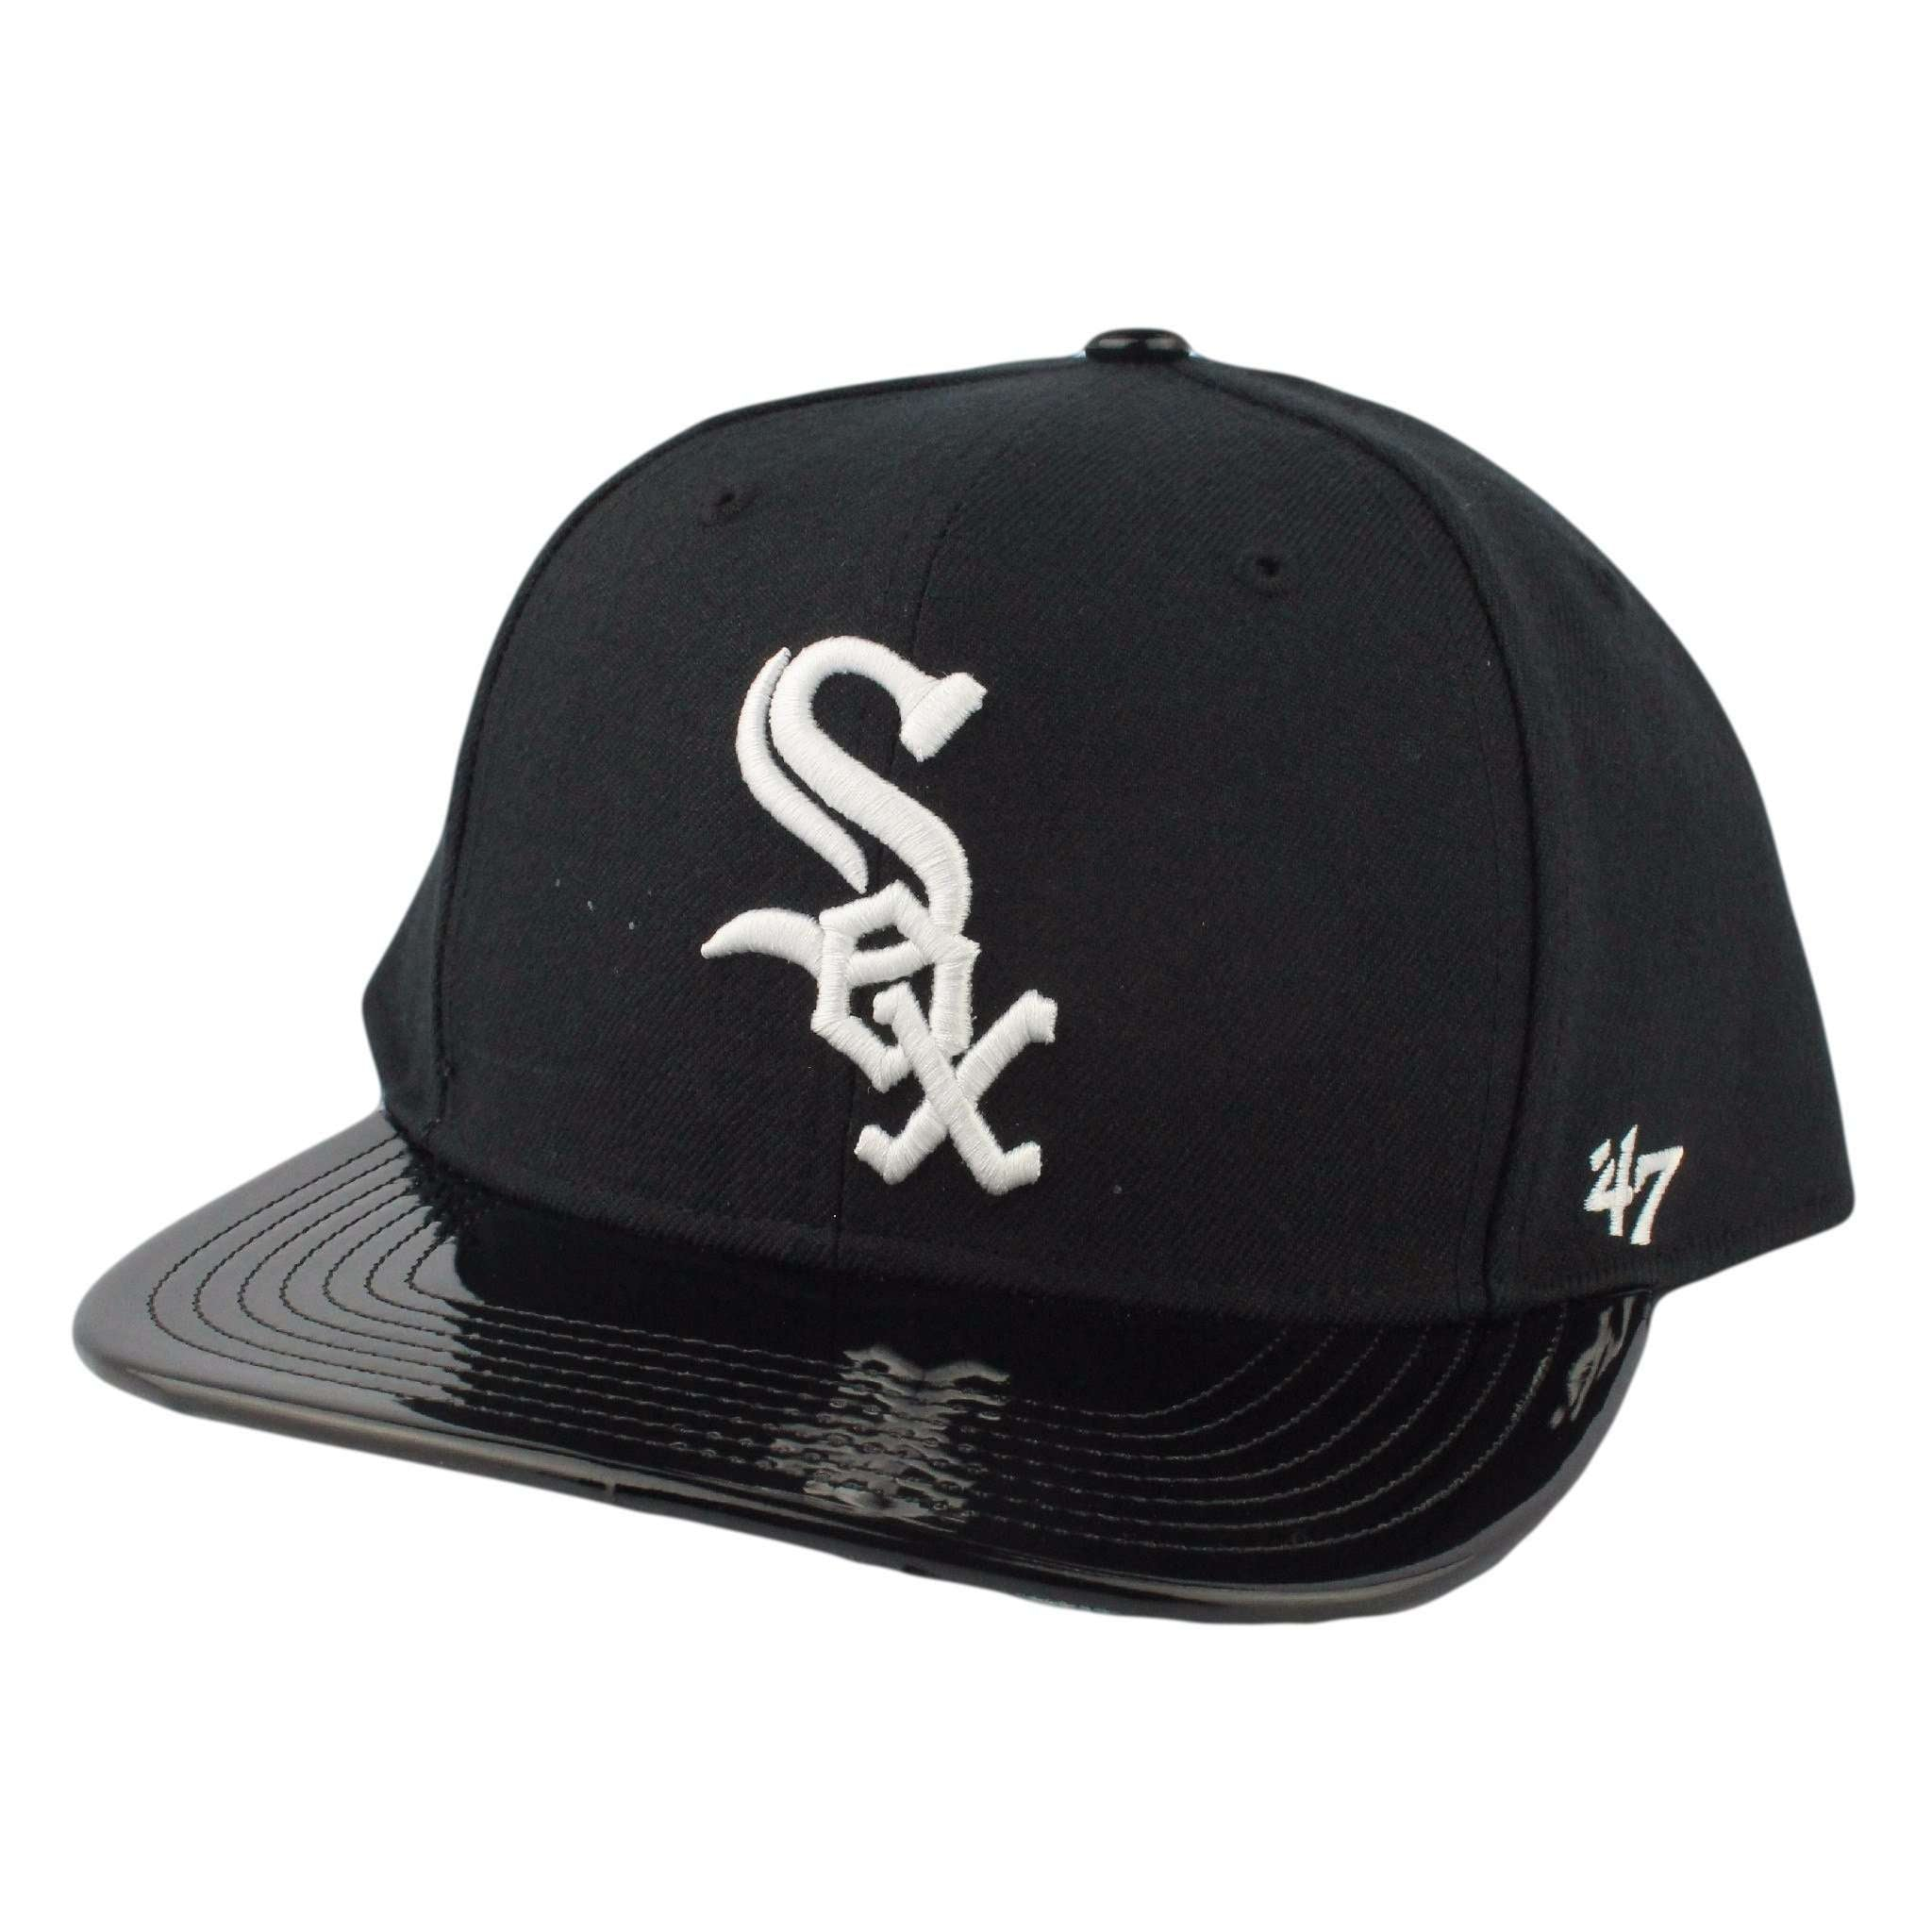 d52bce96a8d Chicago White Sox Shinedown Black Black Snapback